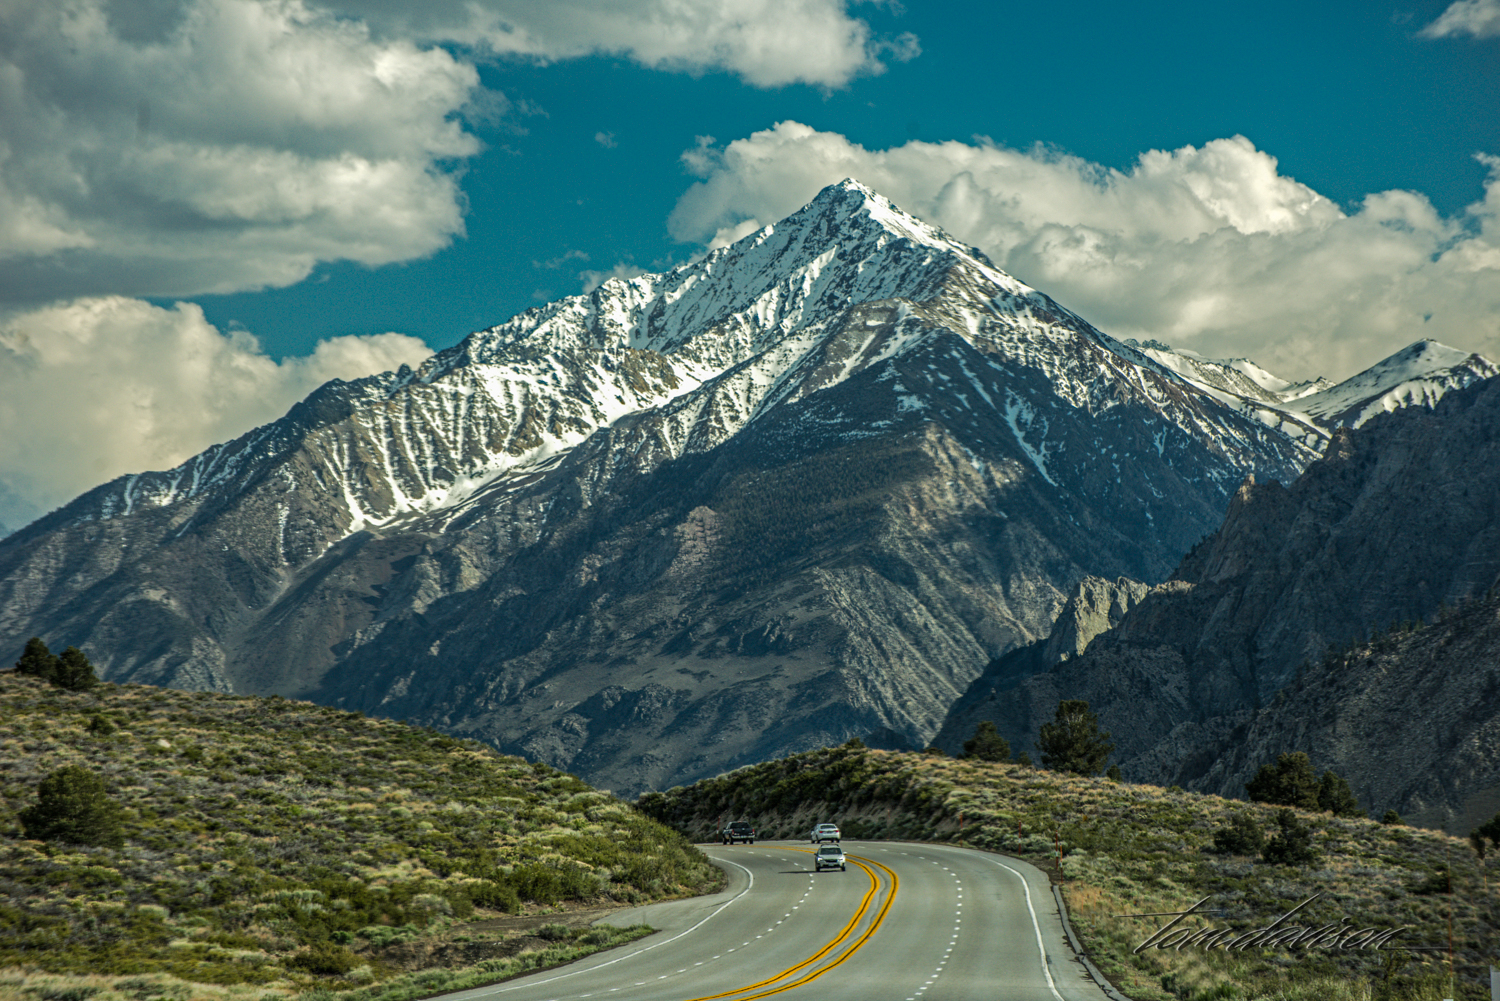 Mt. Tom from Highway 395.